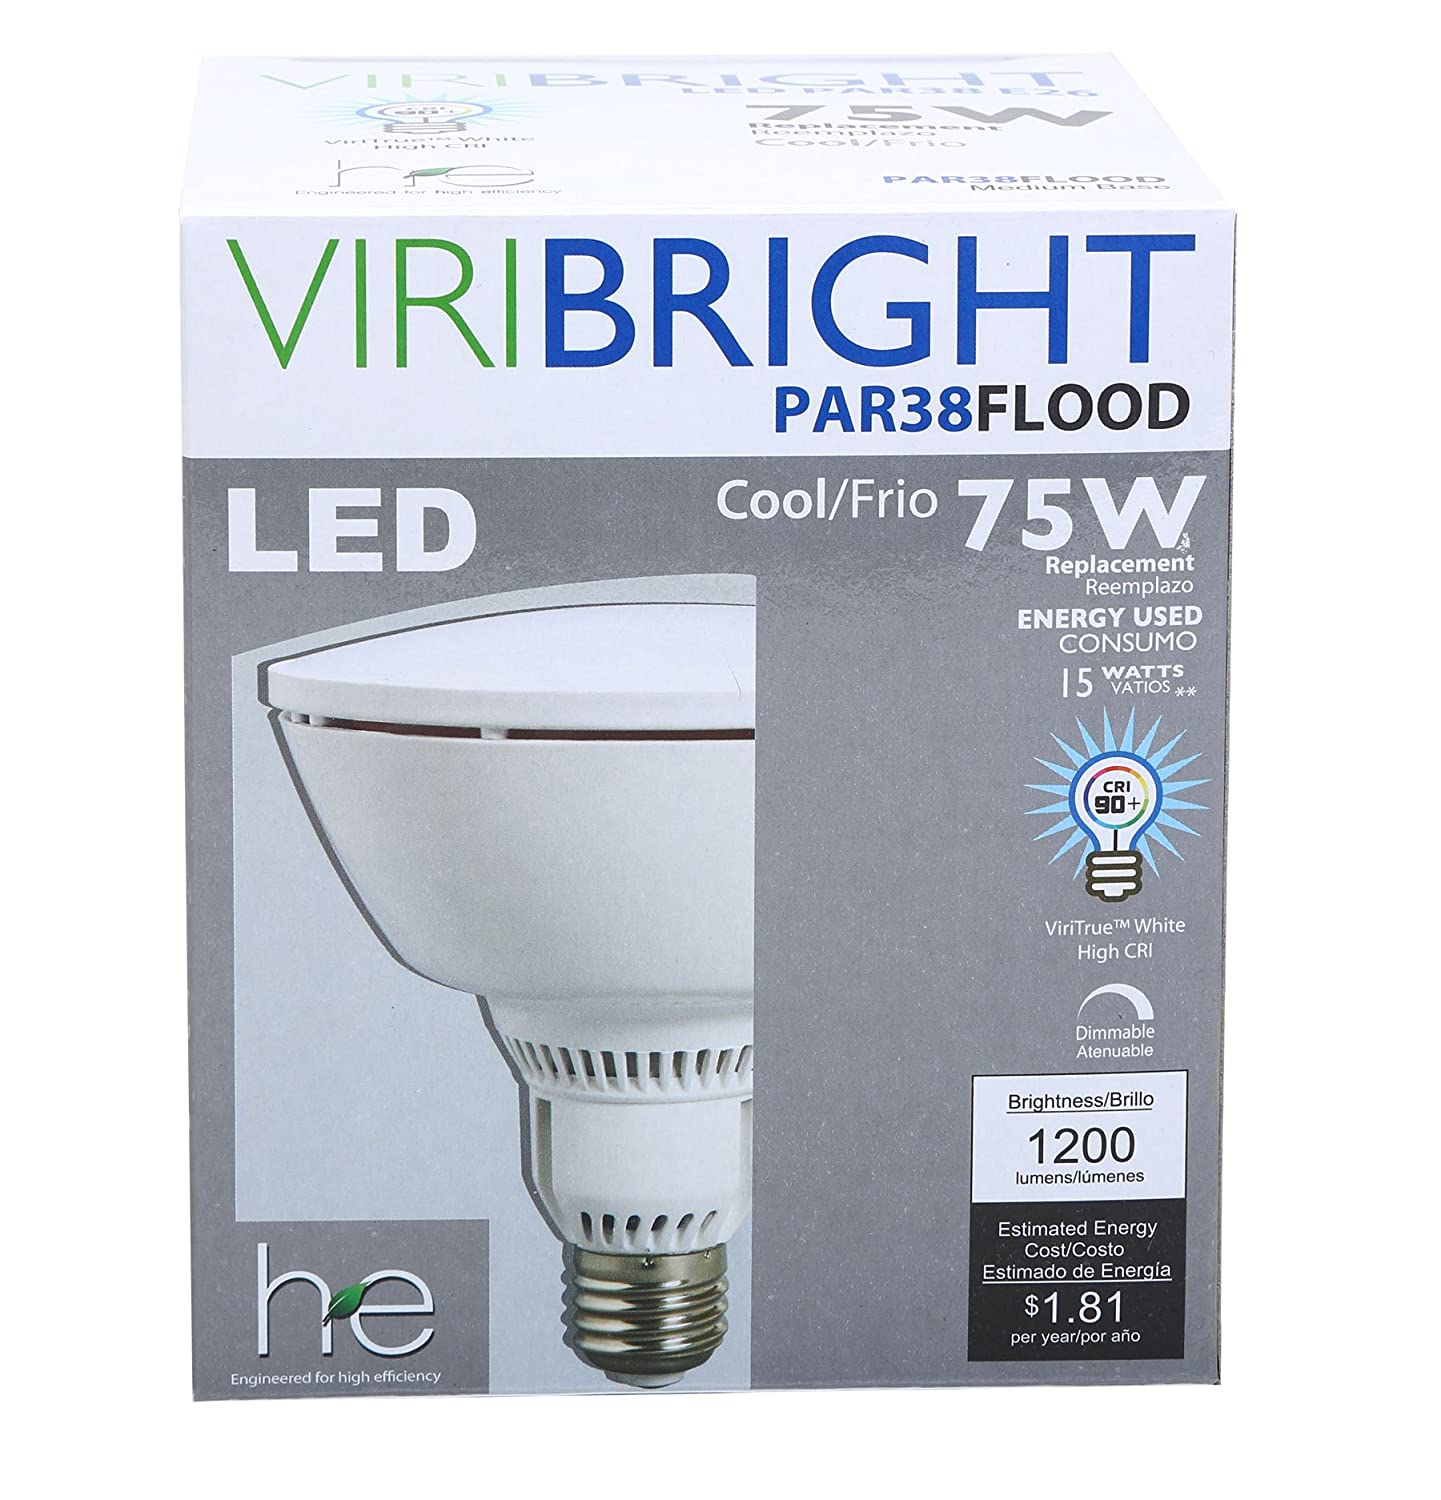 Viribright 750076 LED Light Bulbs 8, New Star Certified, Dimmable, Energy Saving, Low Cost, Super Value Pack, PAR38, Cool White - - Amazon.com